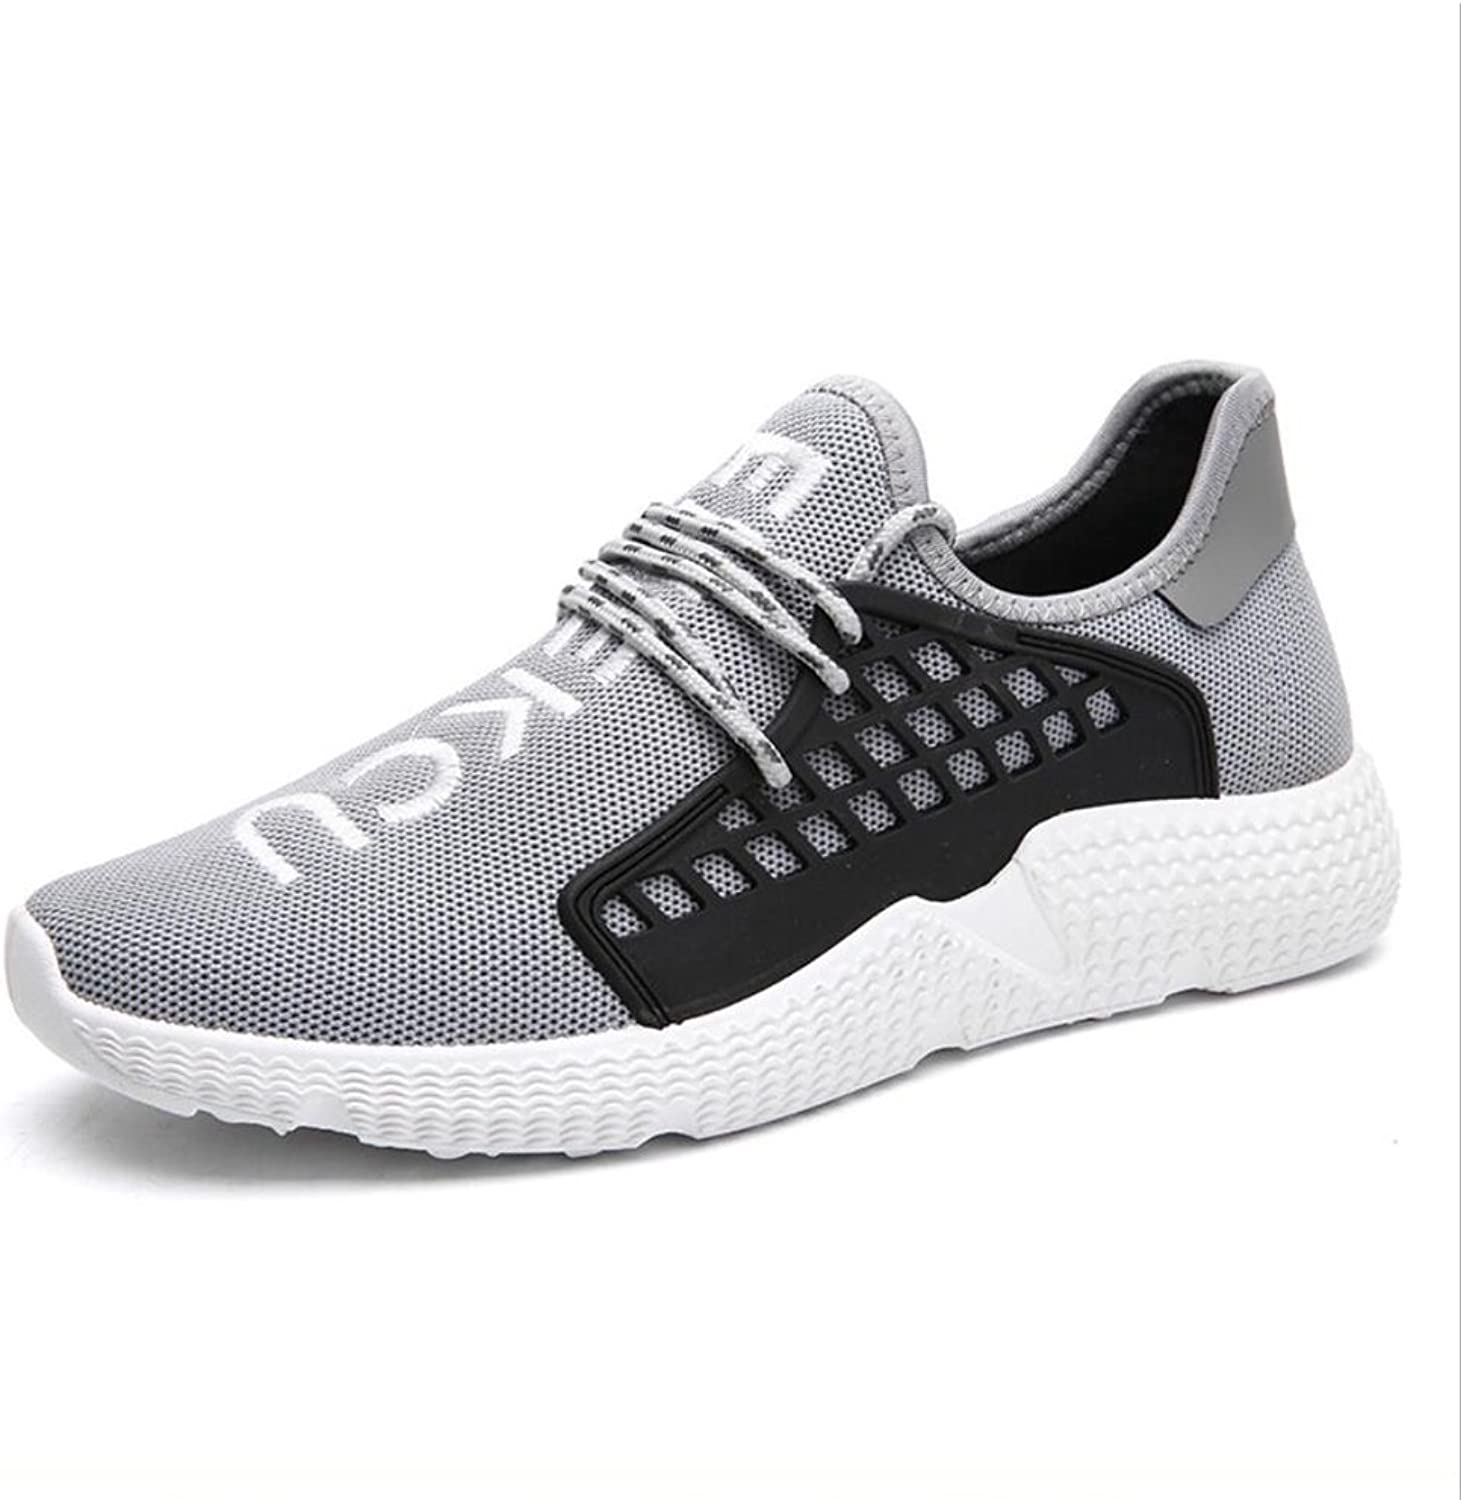 XUE Men's shoes Knit Spring Summer,Casual Athletic shoes,Breathable Running shoes,Lightweight Walking shoes, Light Soles Low-Top Sneakers (color   B, Size   41)